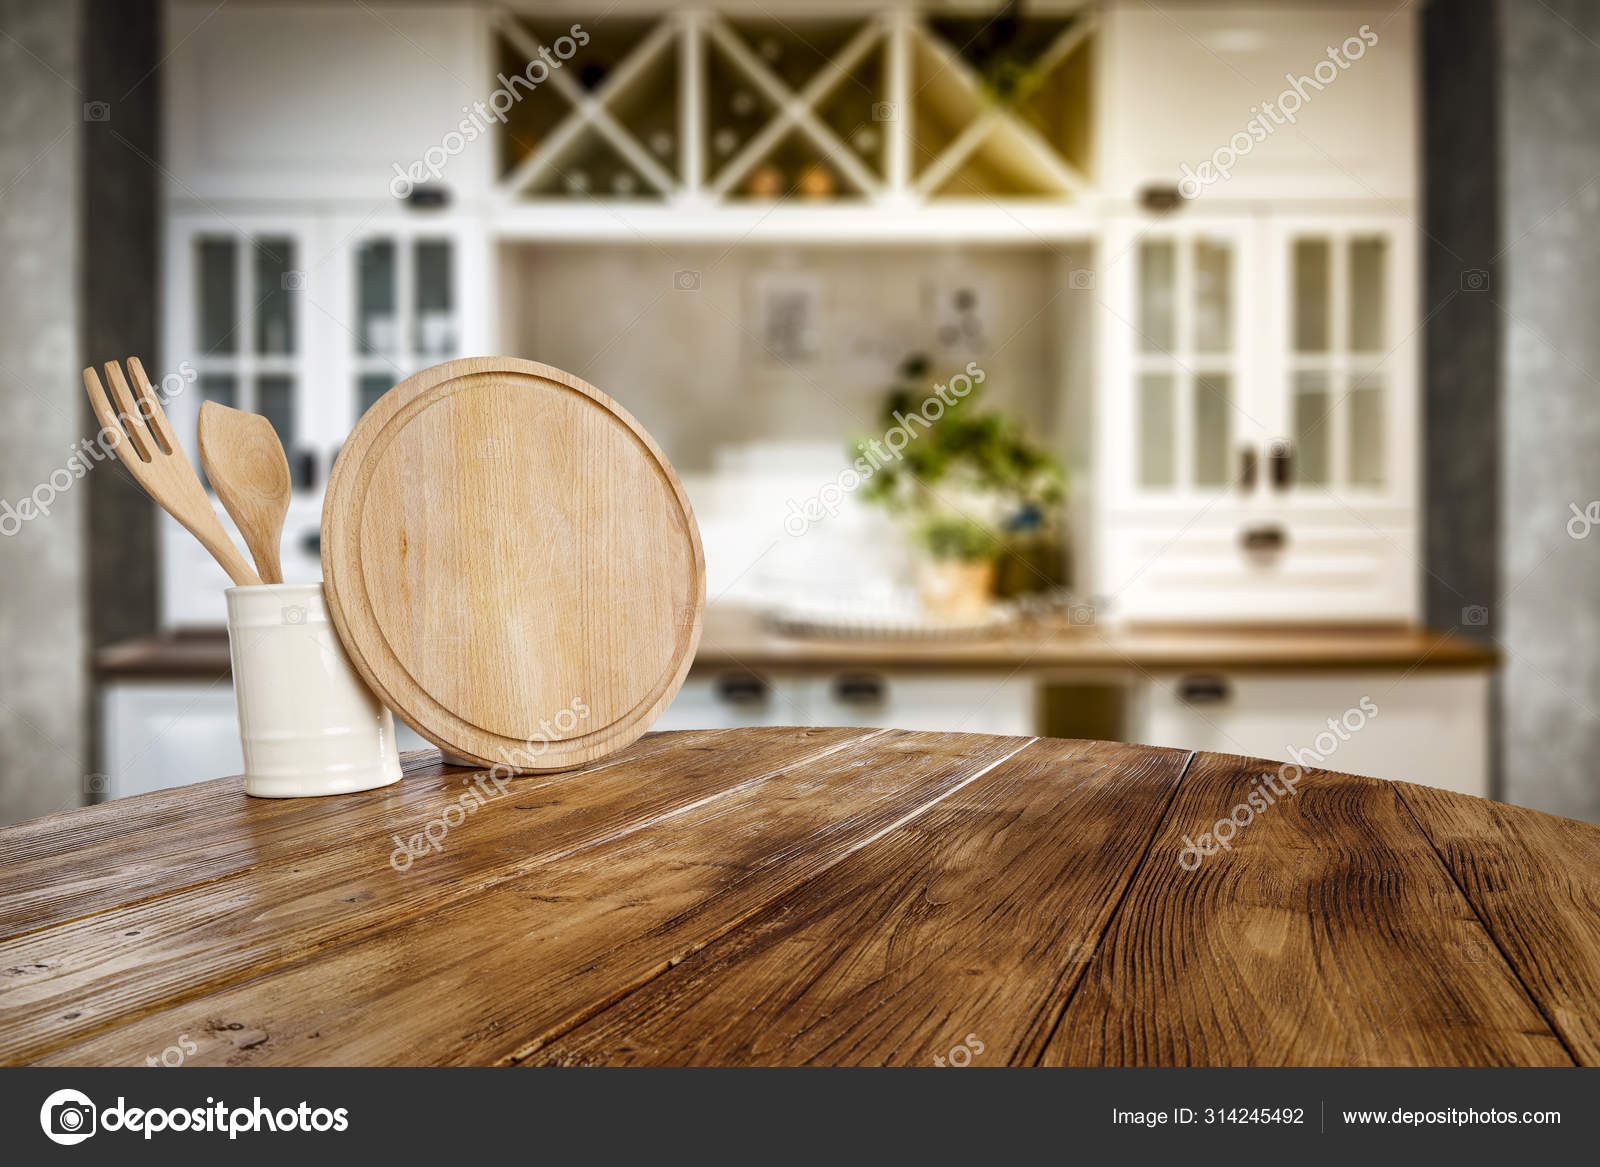 Kitchen table top with empty space for you products or decoration and  blurred kitchen furniture background. 9